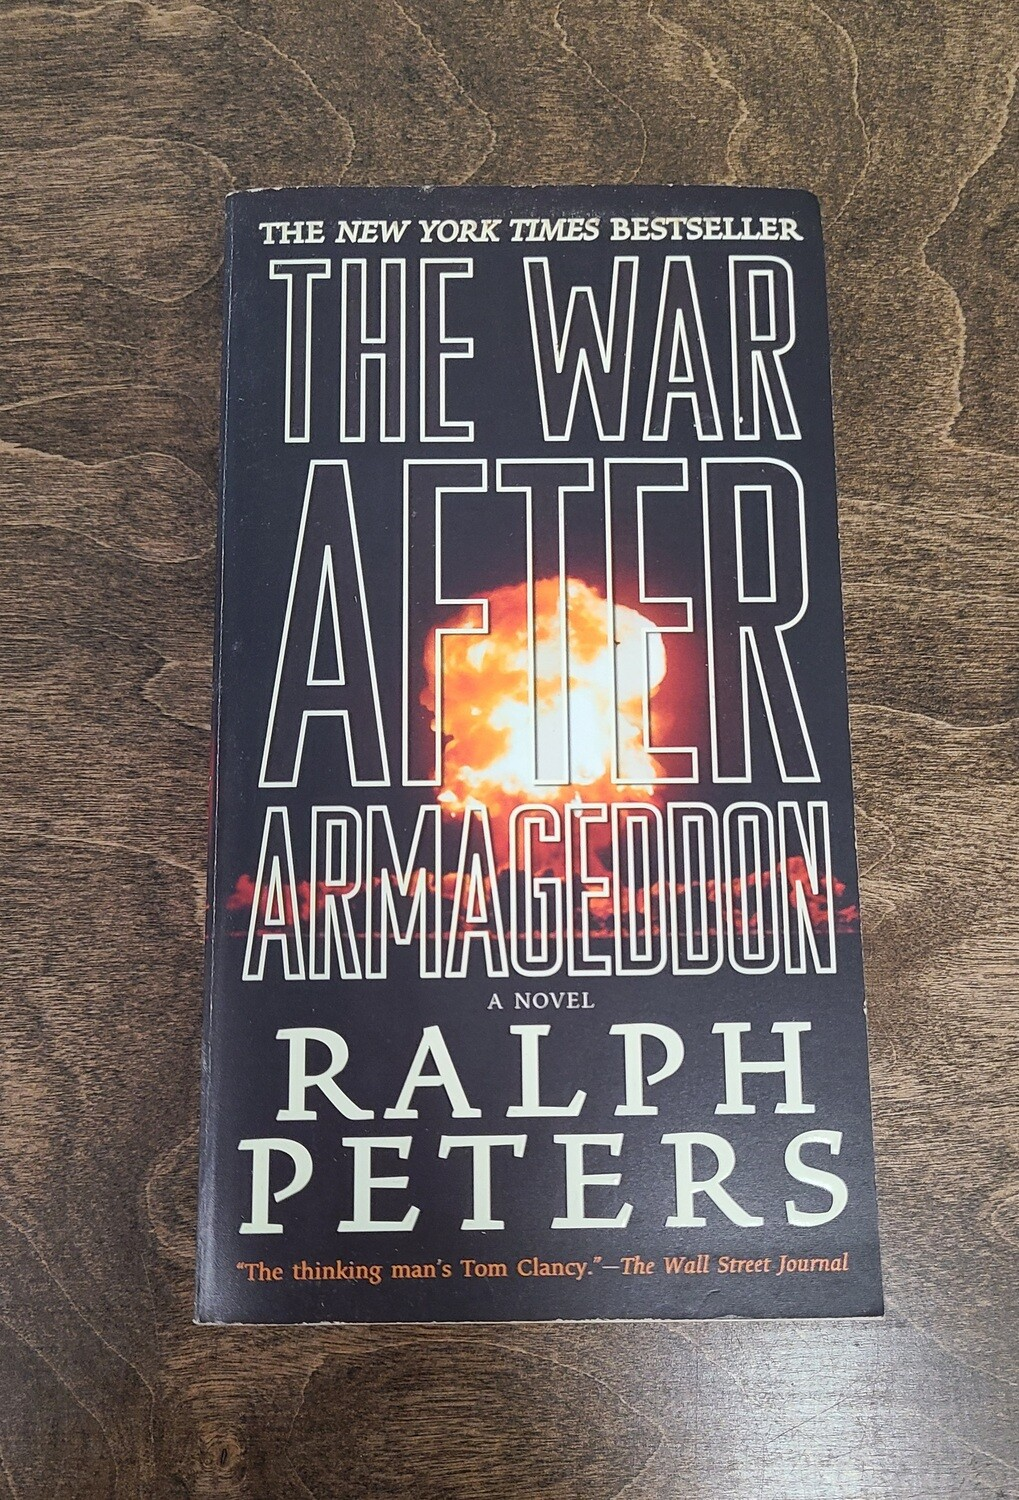 The War After Armageddon by Ralph Peters